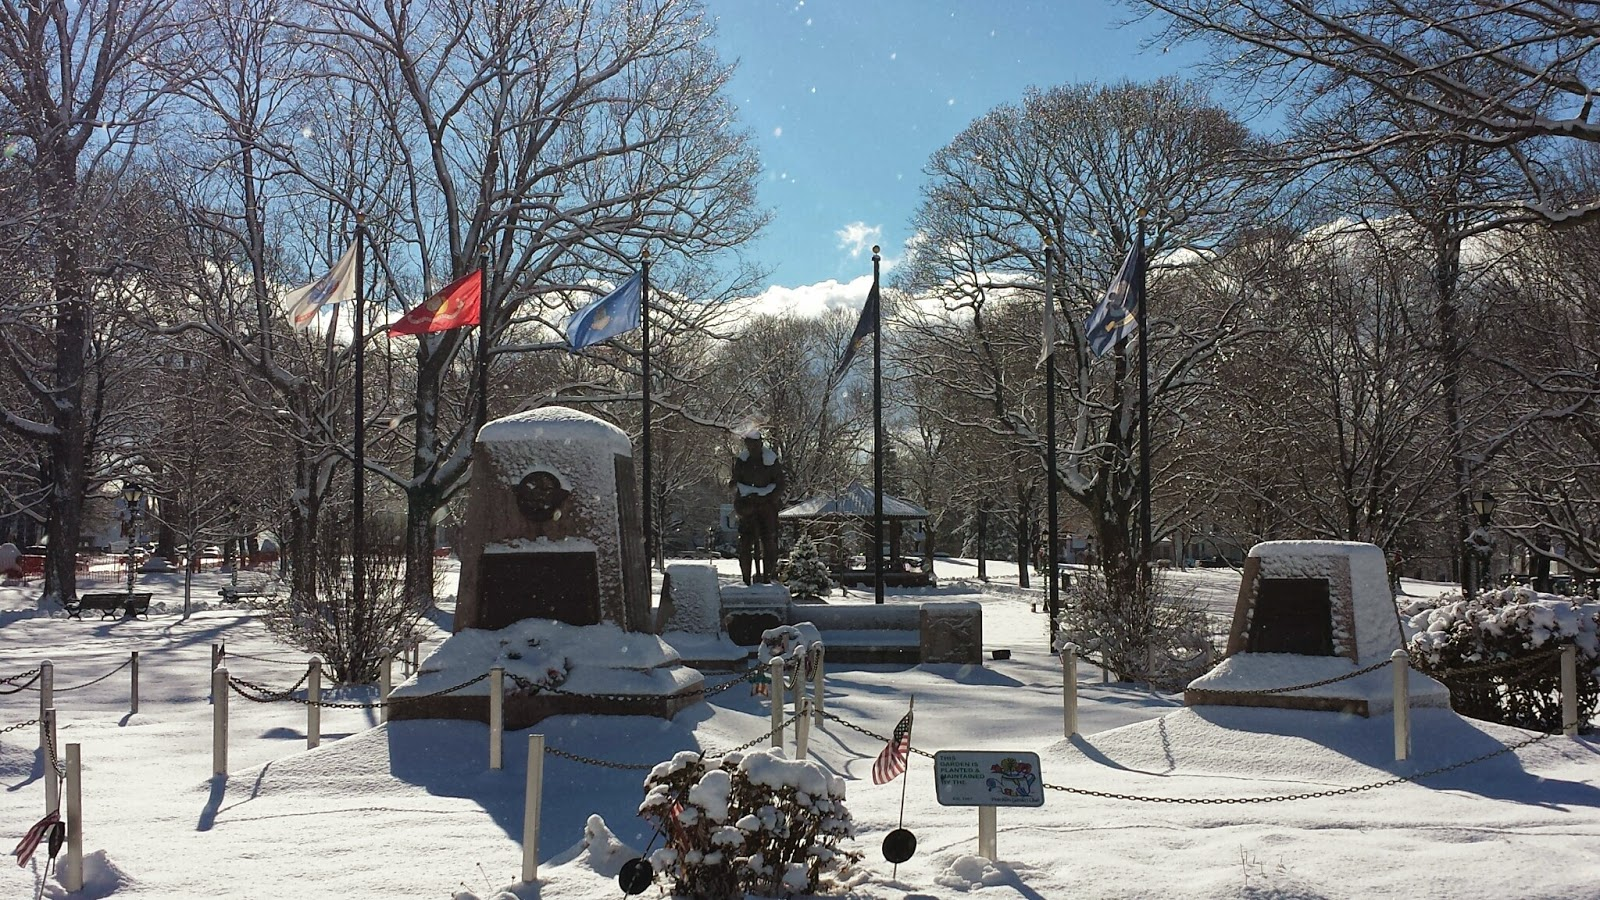 the war memorials on the Town Common decorated with snow